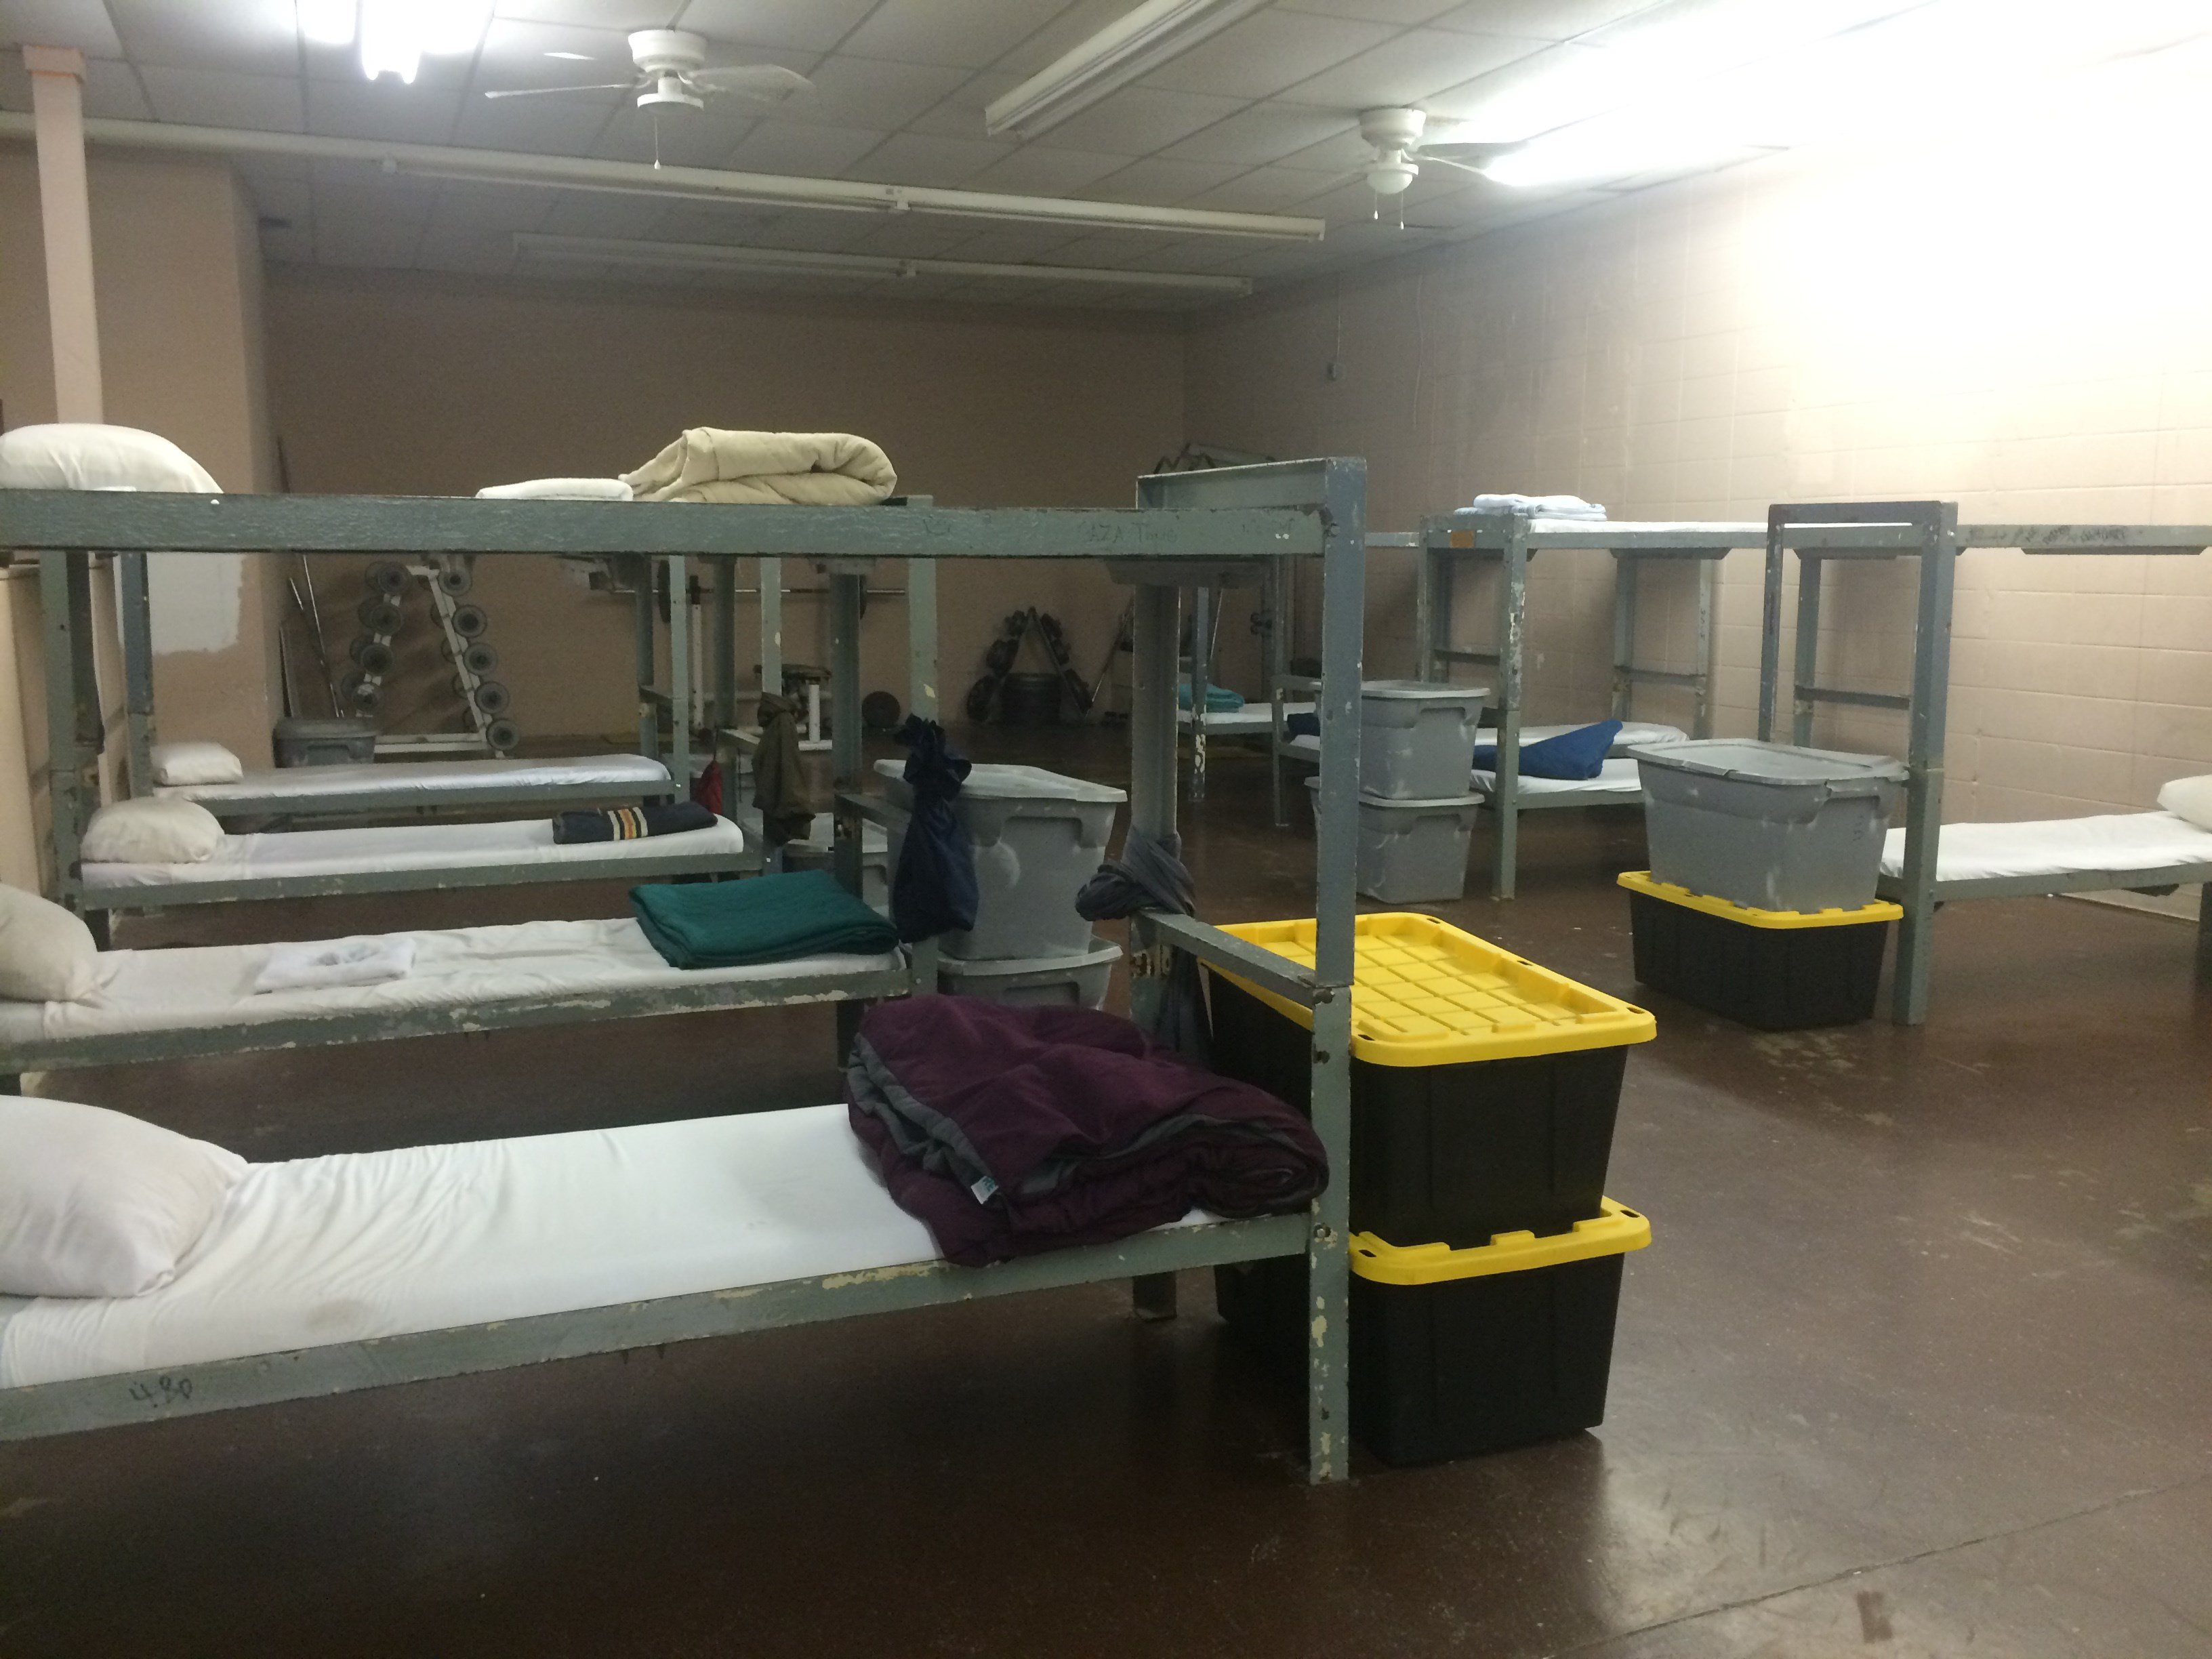 The sleeping quarters of children in the Saving Youth Foundation. Three people affiliated with the facility have been charged with aggravated abuse.